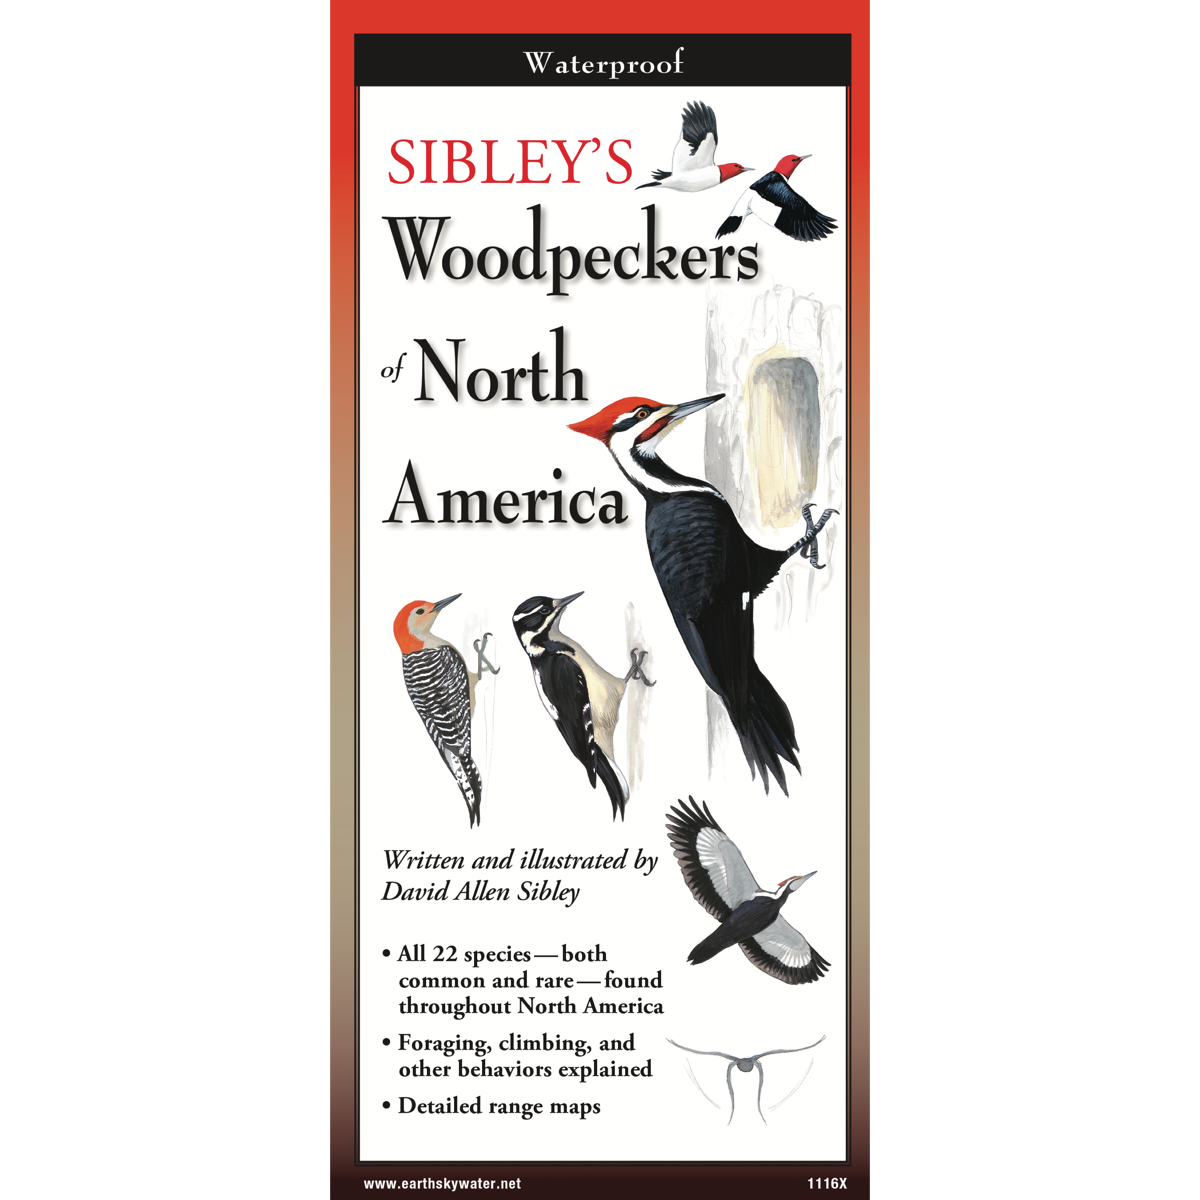 Sibley's Woodpeckers of North America